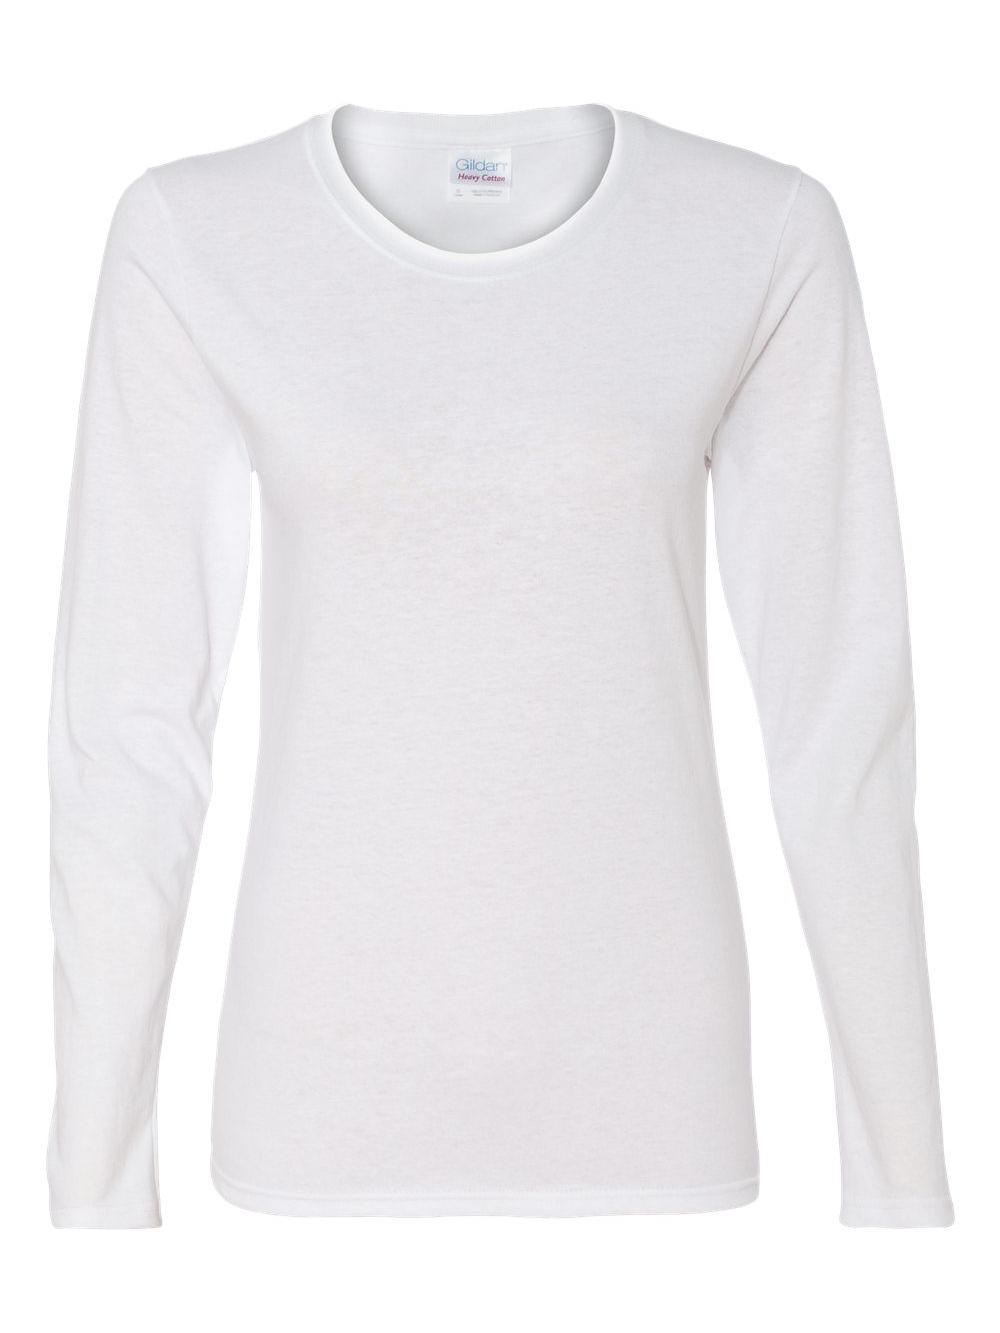 Gildan-Heavy-Cotton-Women-039-s-Long-Sleeve-T-Shirt-5400L thumbnail 9